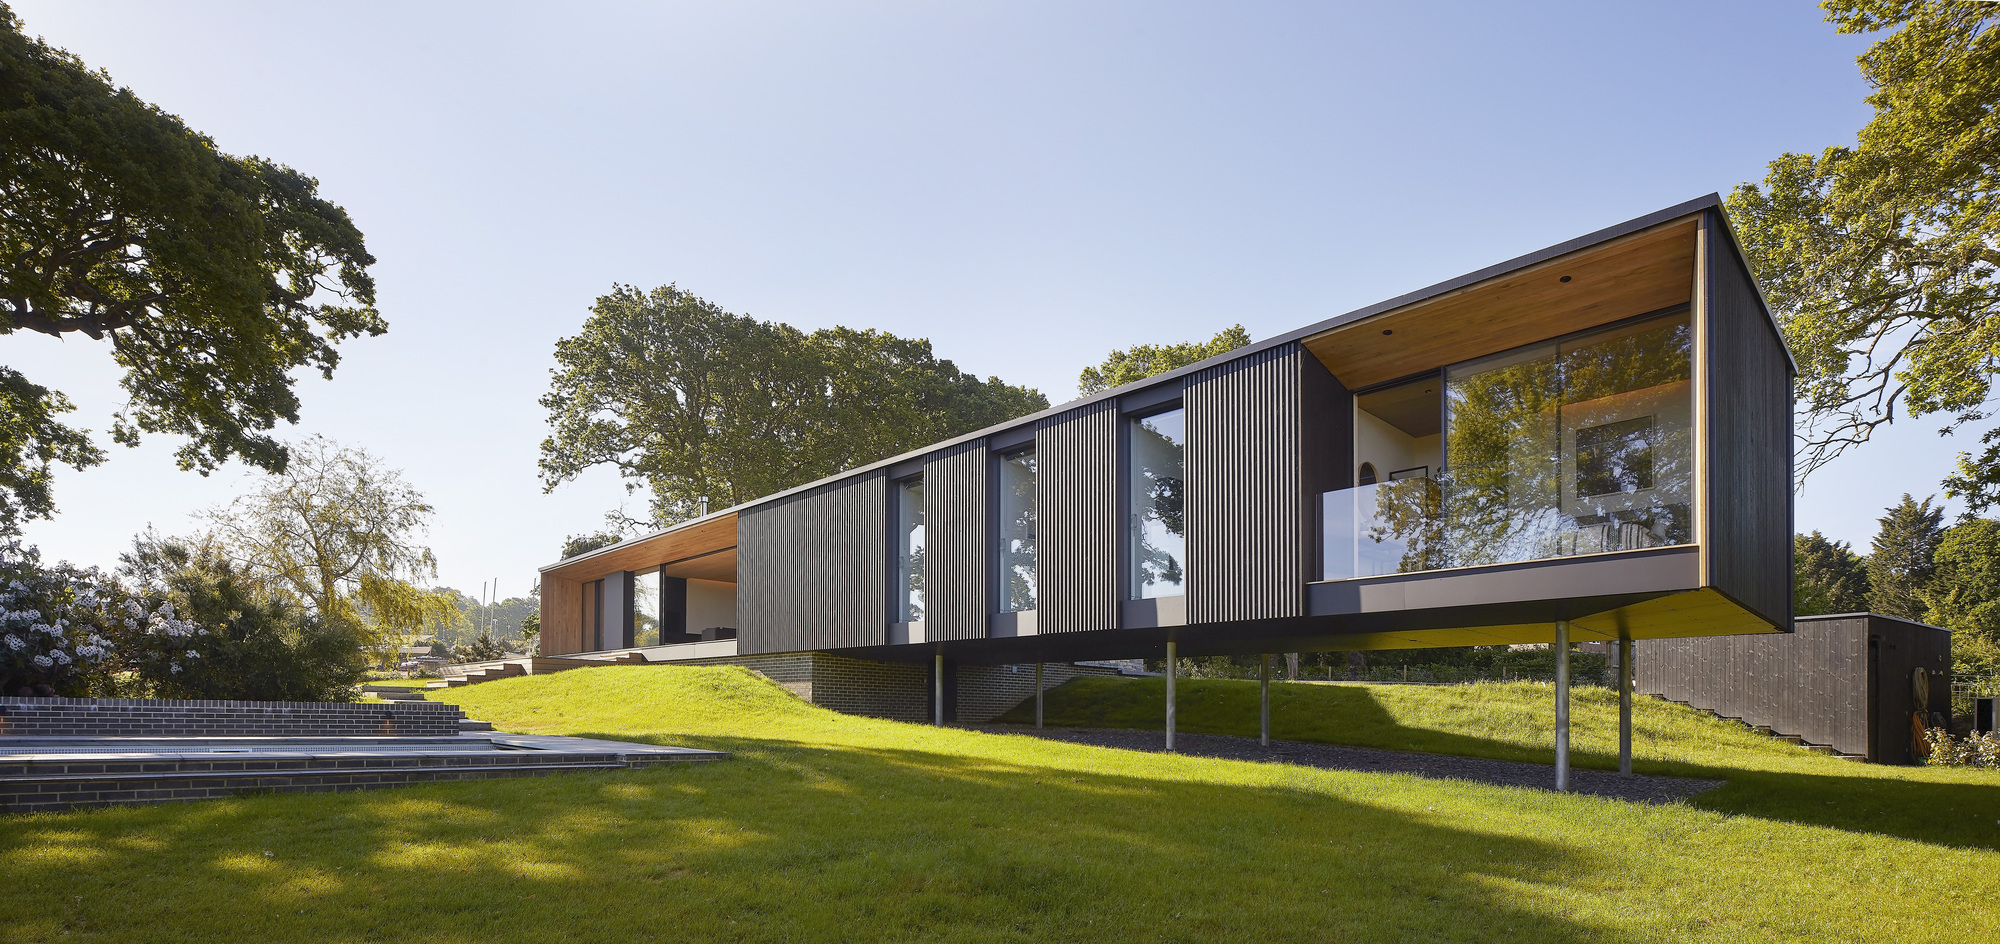 ARCHITECTURE and HOUSE DESIGN - cover